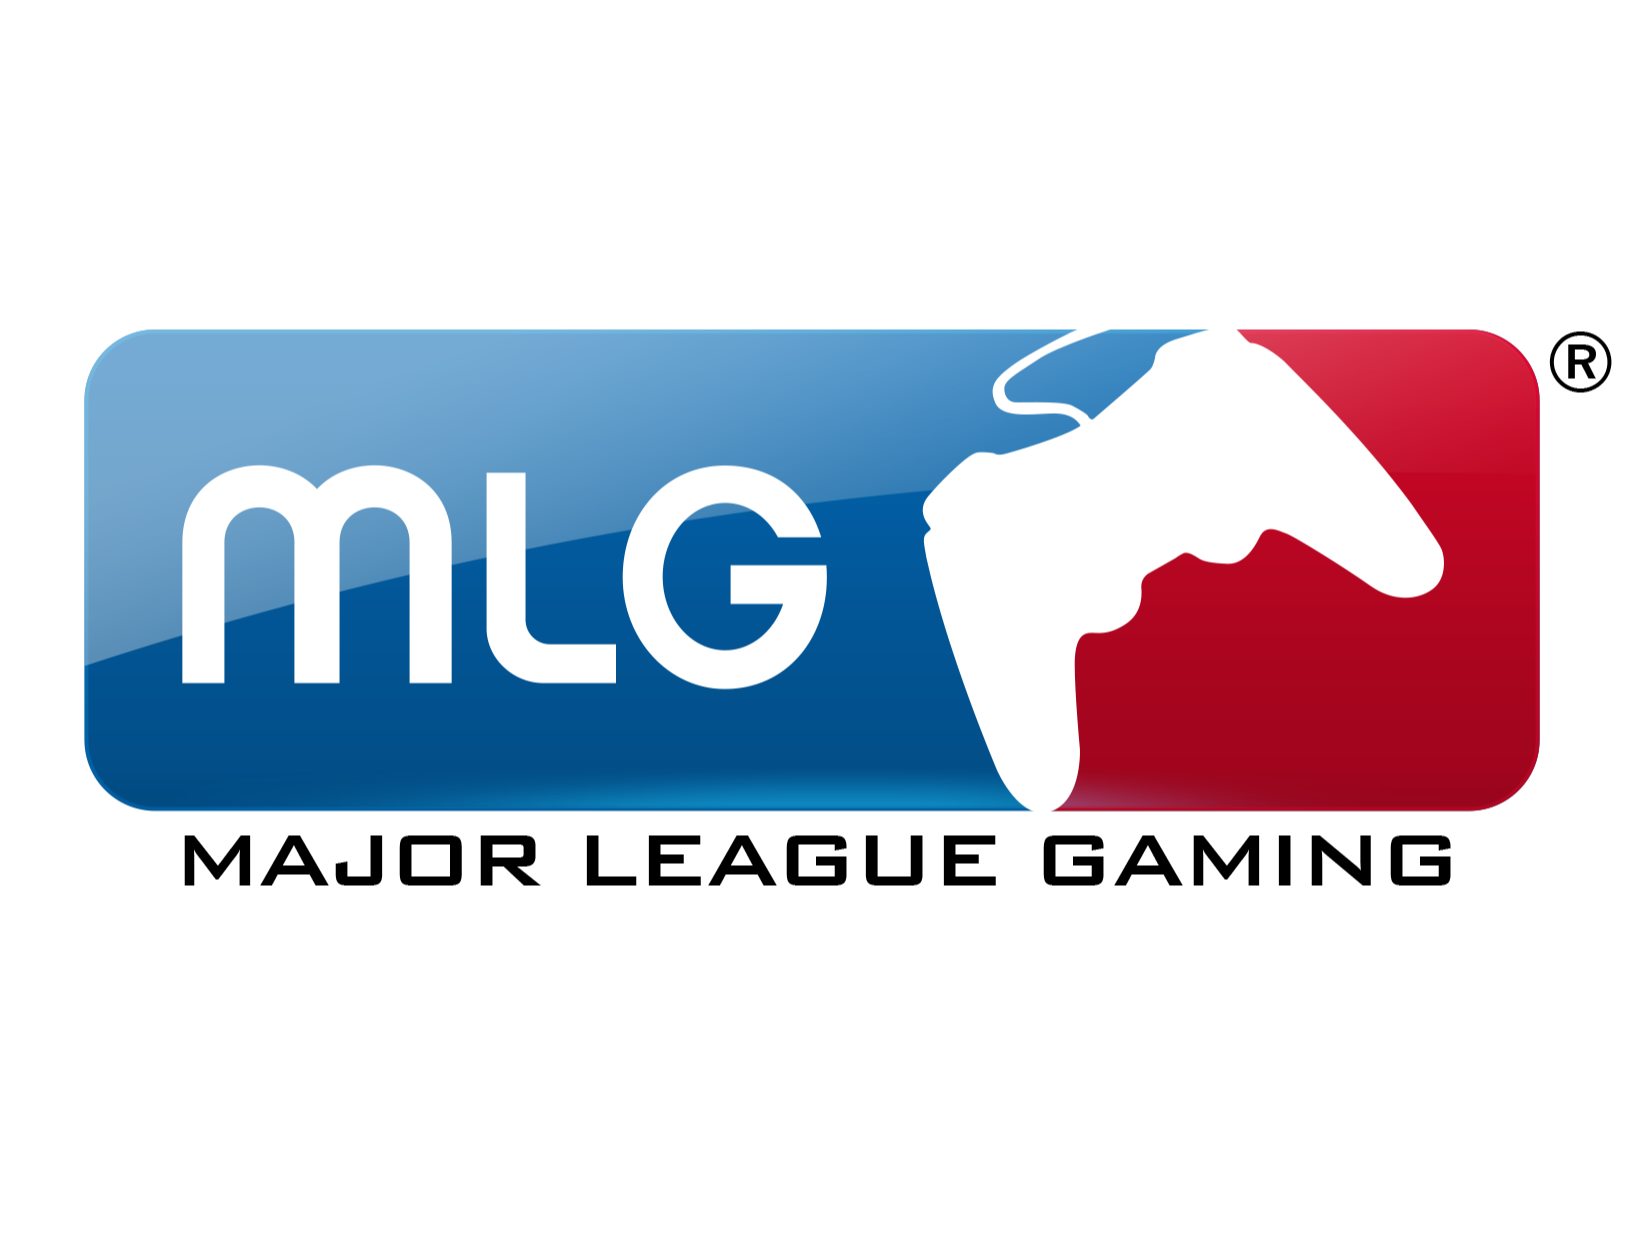 RUMOR: Major League Gaming's assets sold to Activision Blizzard for $46 million | Charlie INTEL